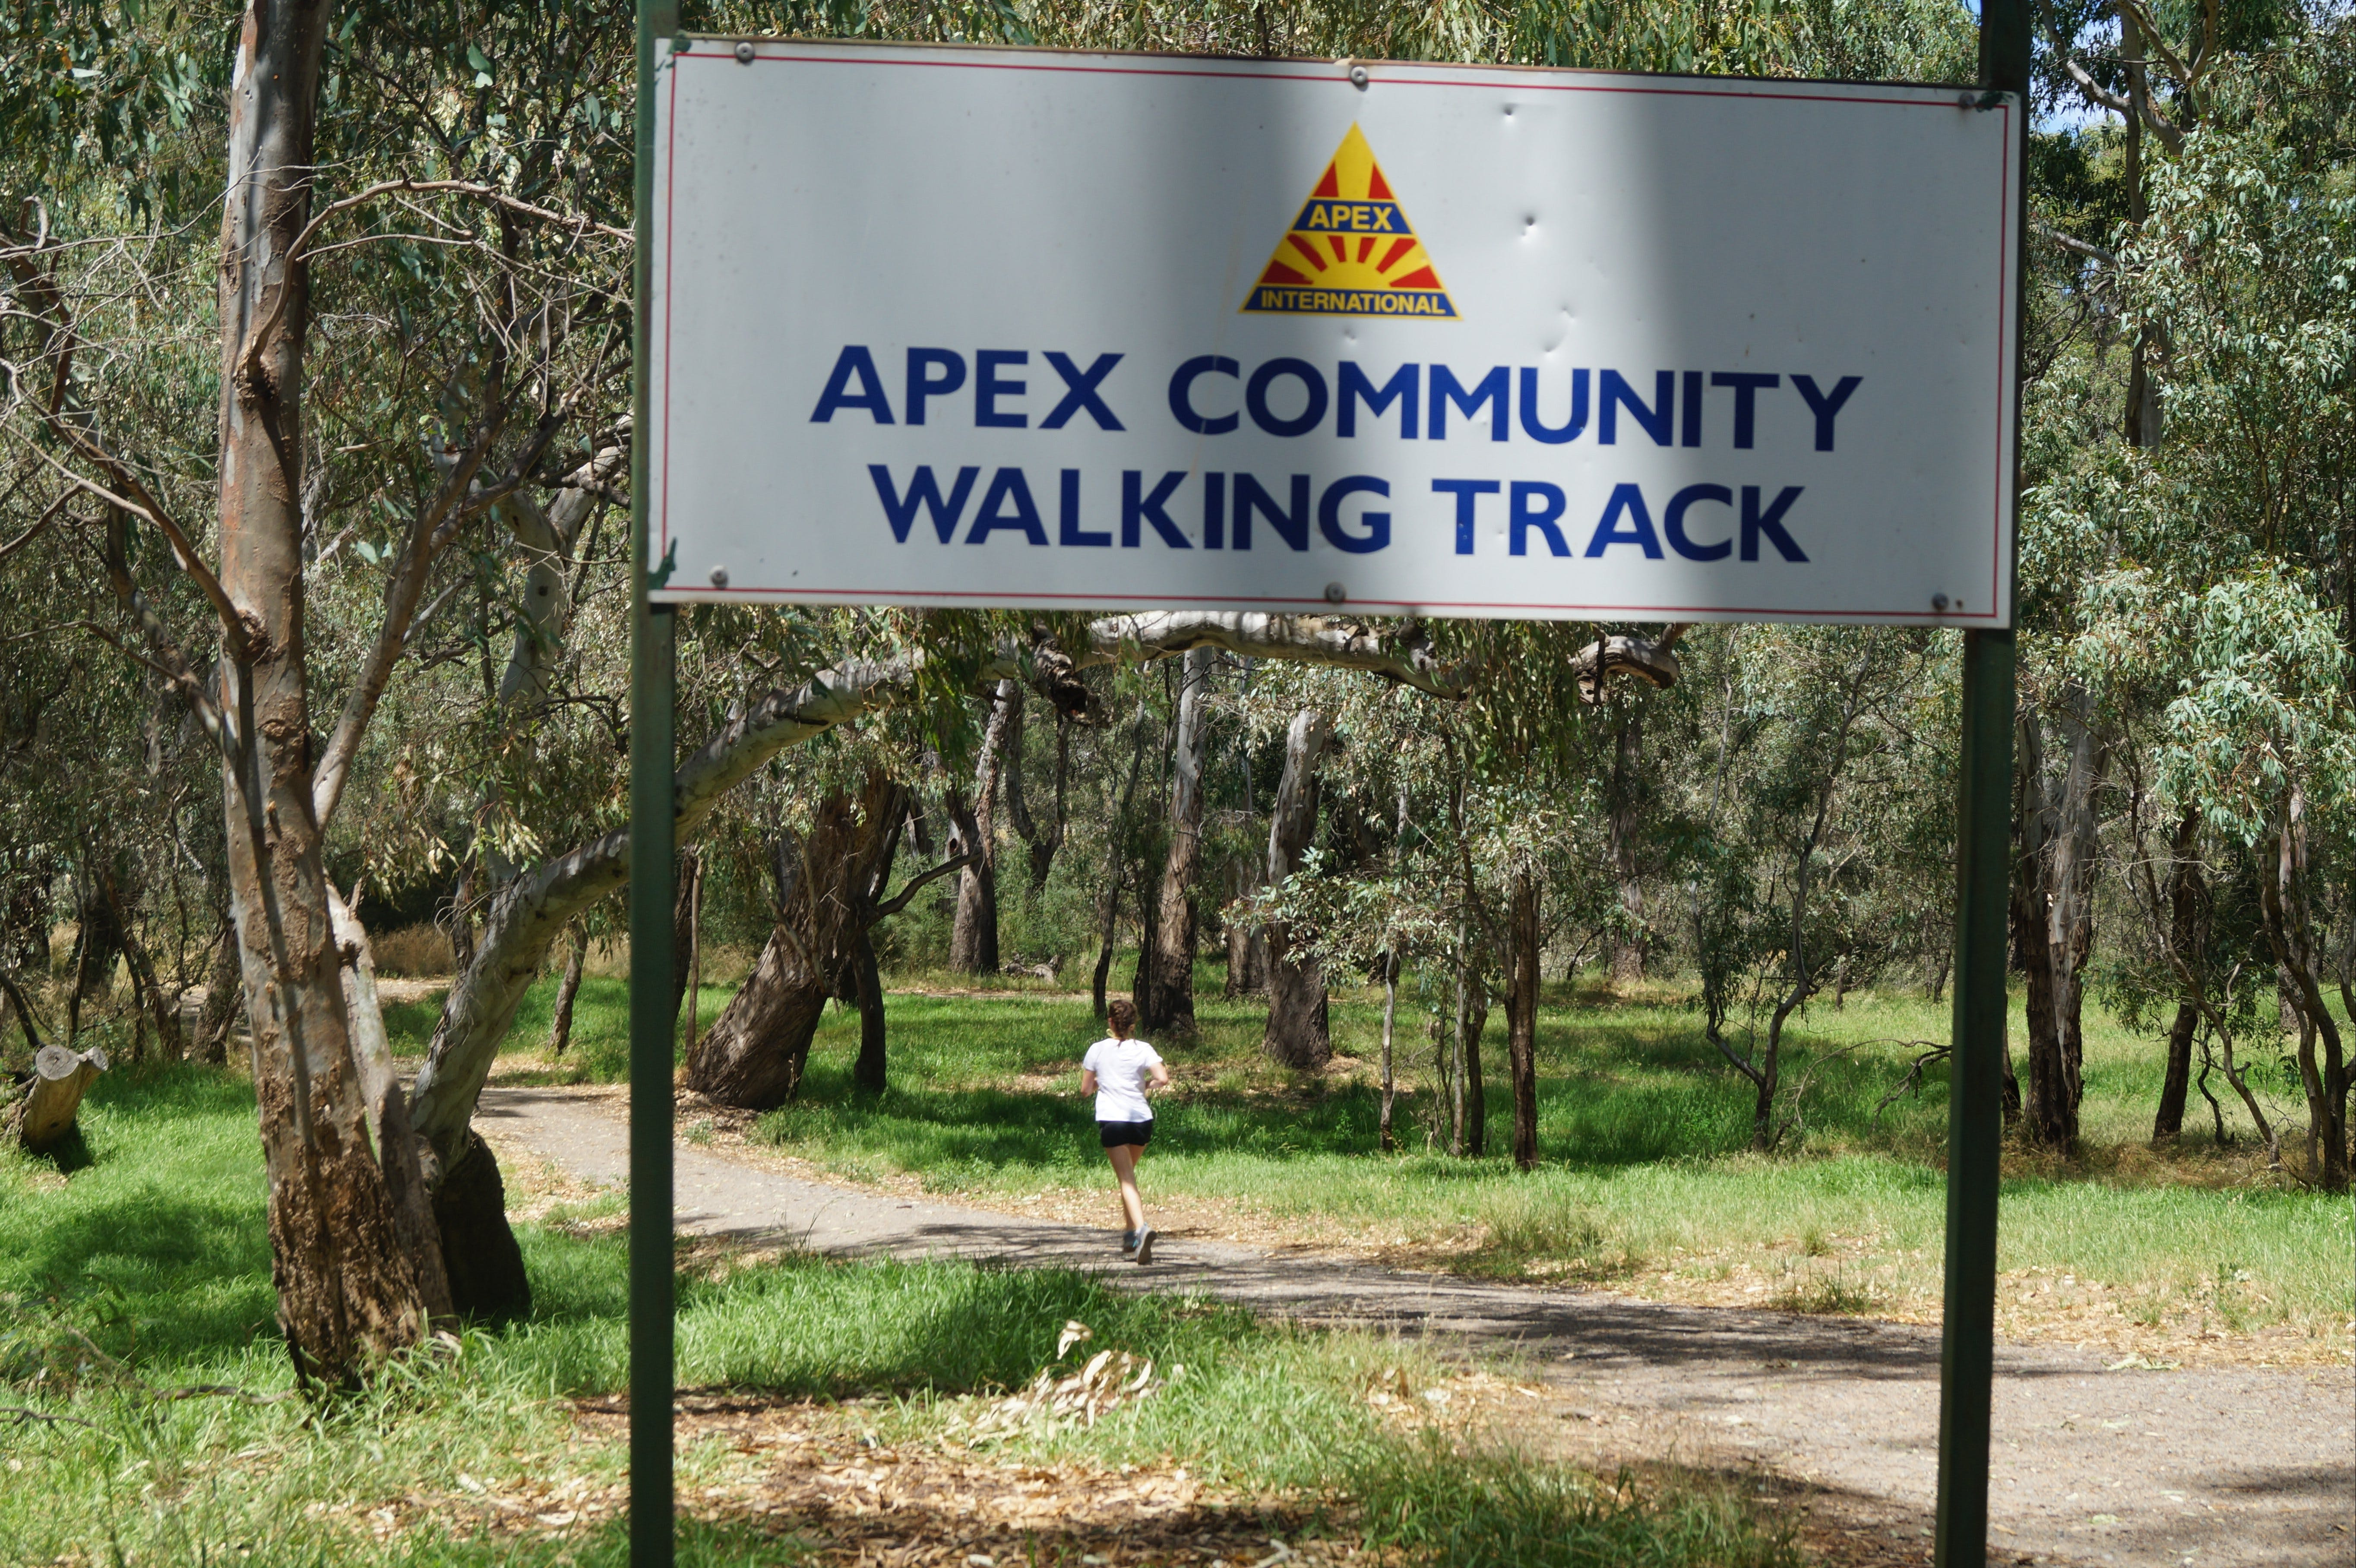 Euroa Apex Walking Track - Attractions